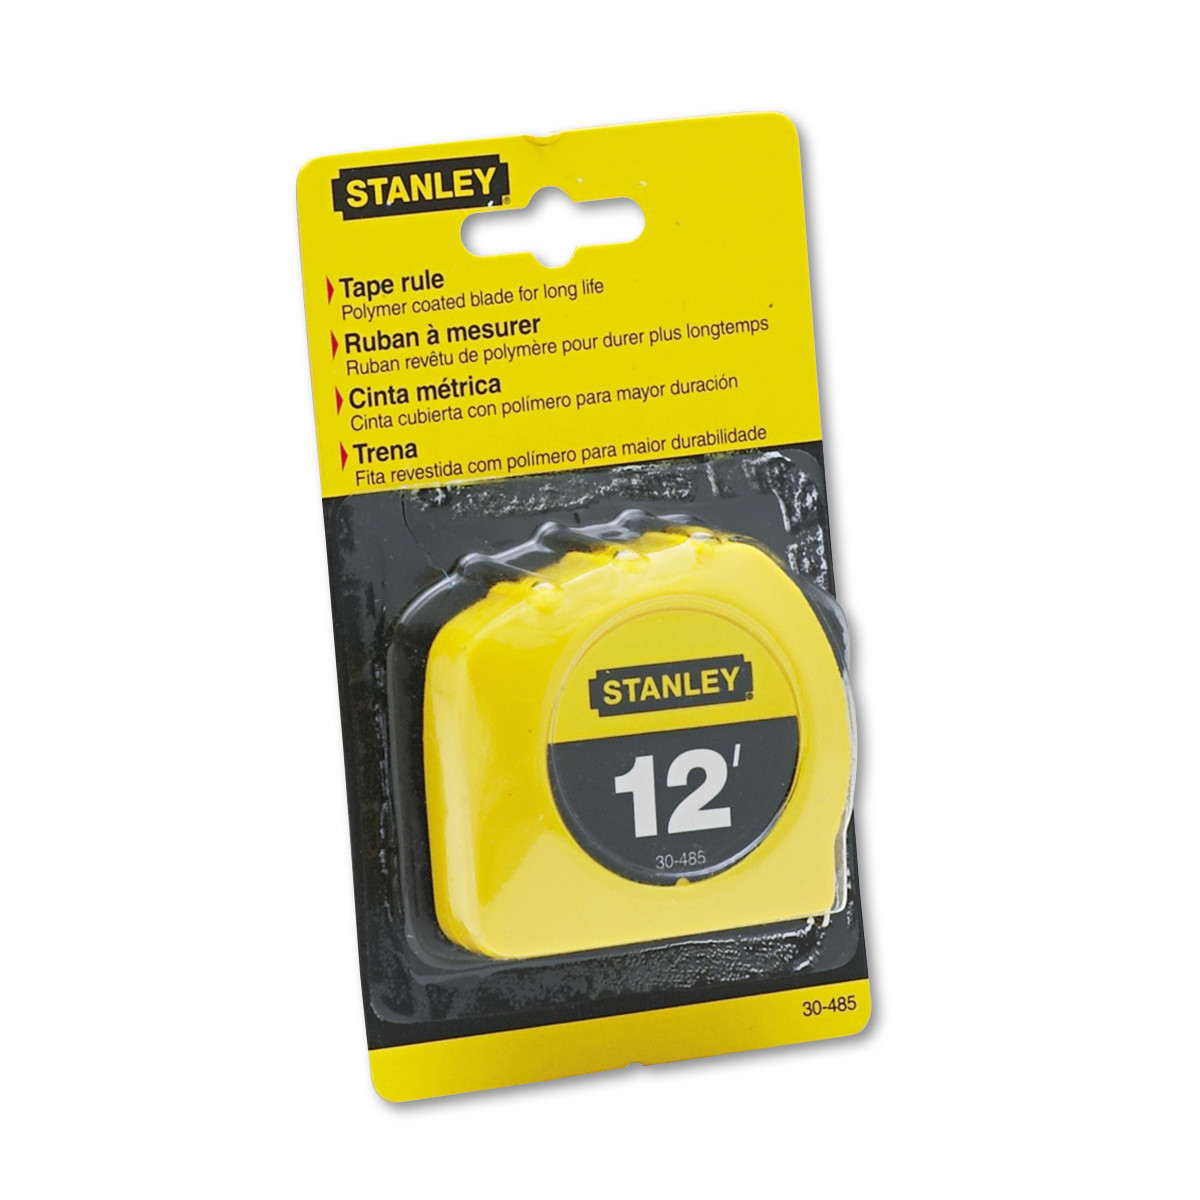 "Stanley Bostitch Power Return Tape Measure w/Belt Clip, 1/2"" x 12ft, Yellow"